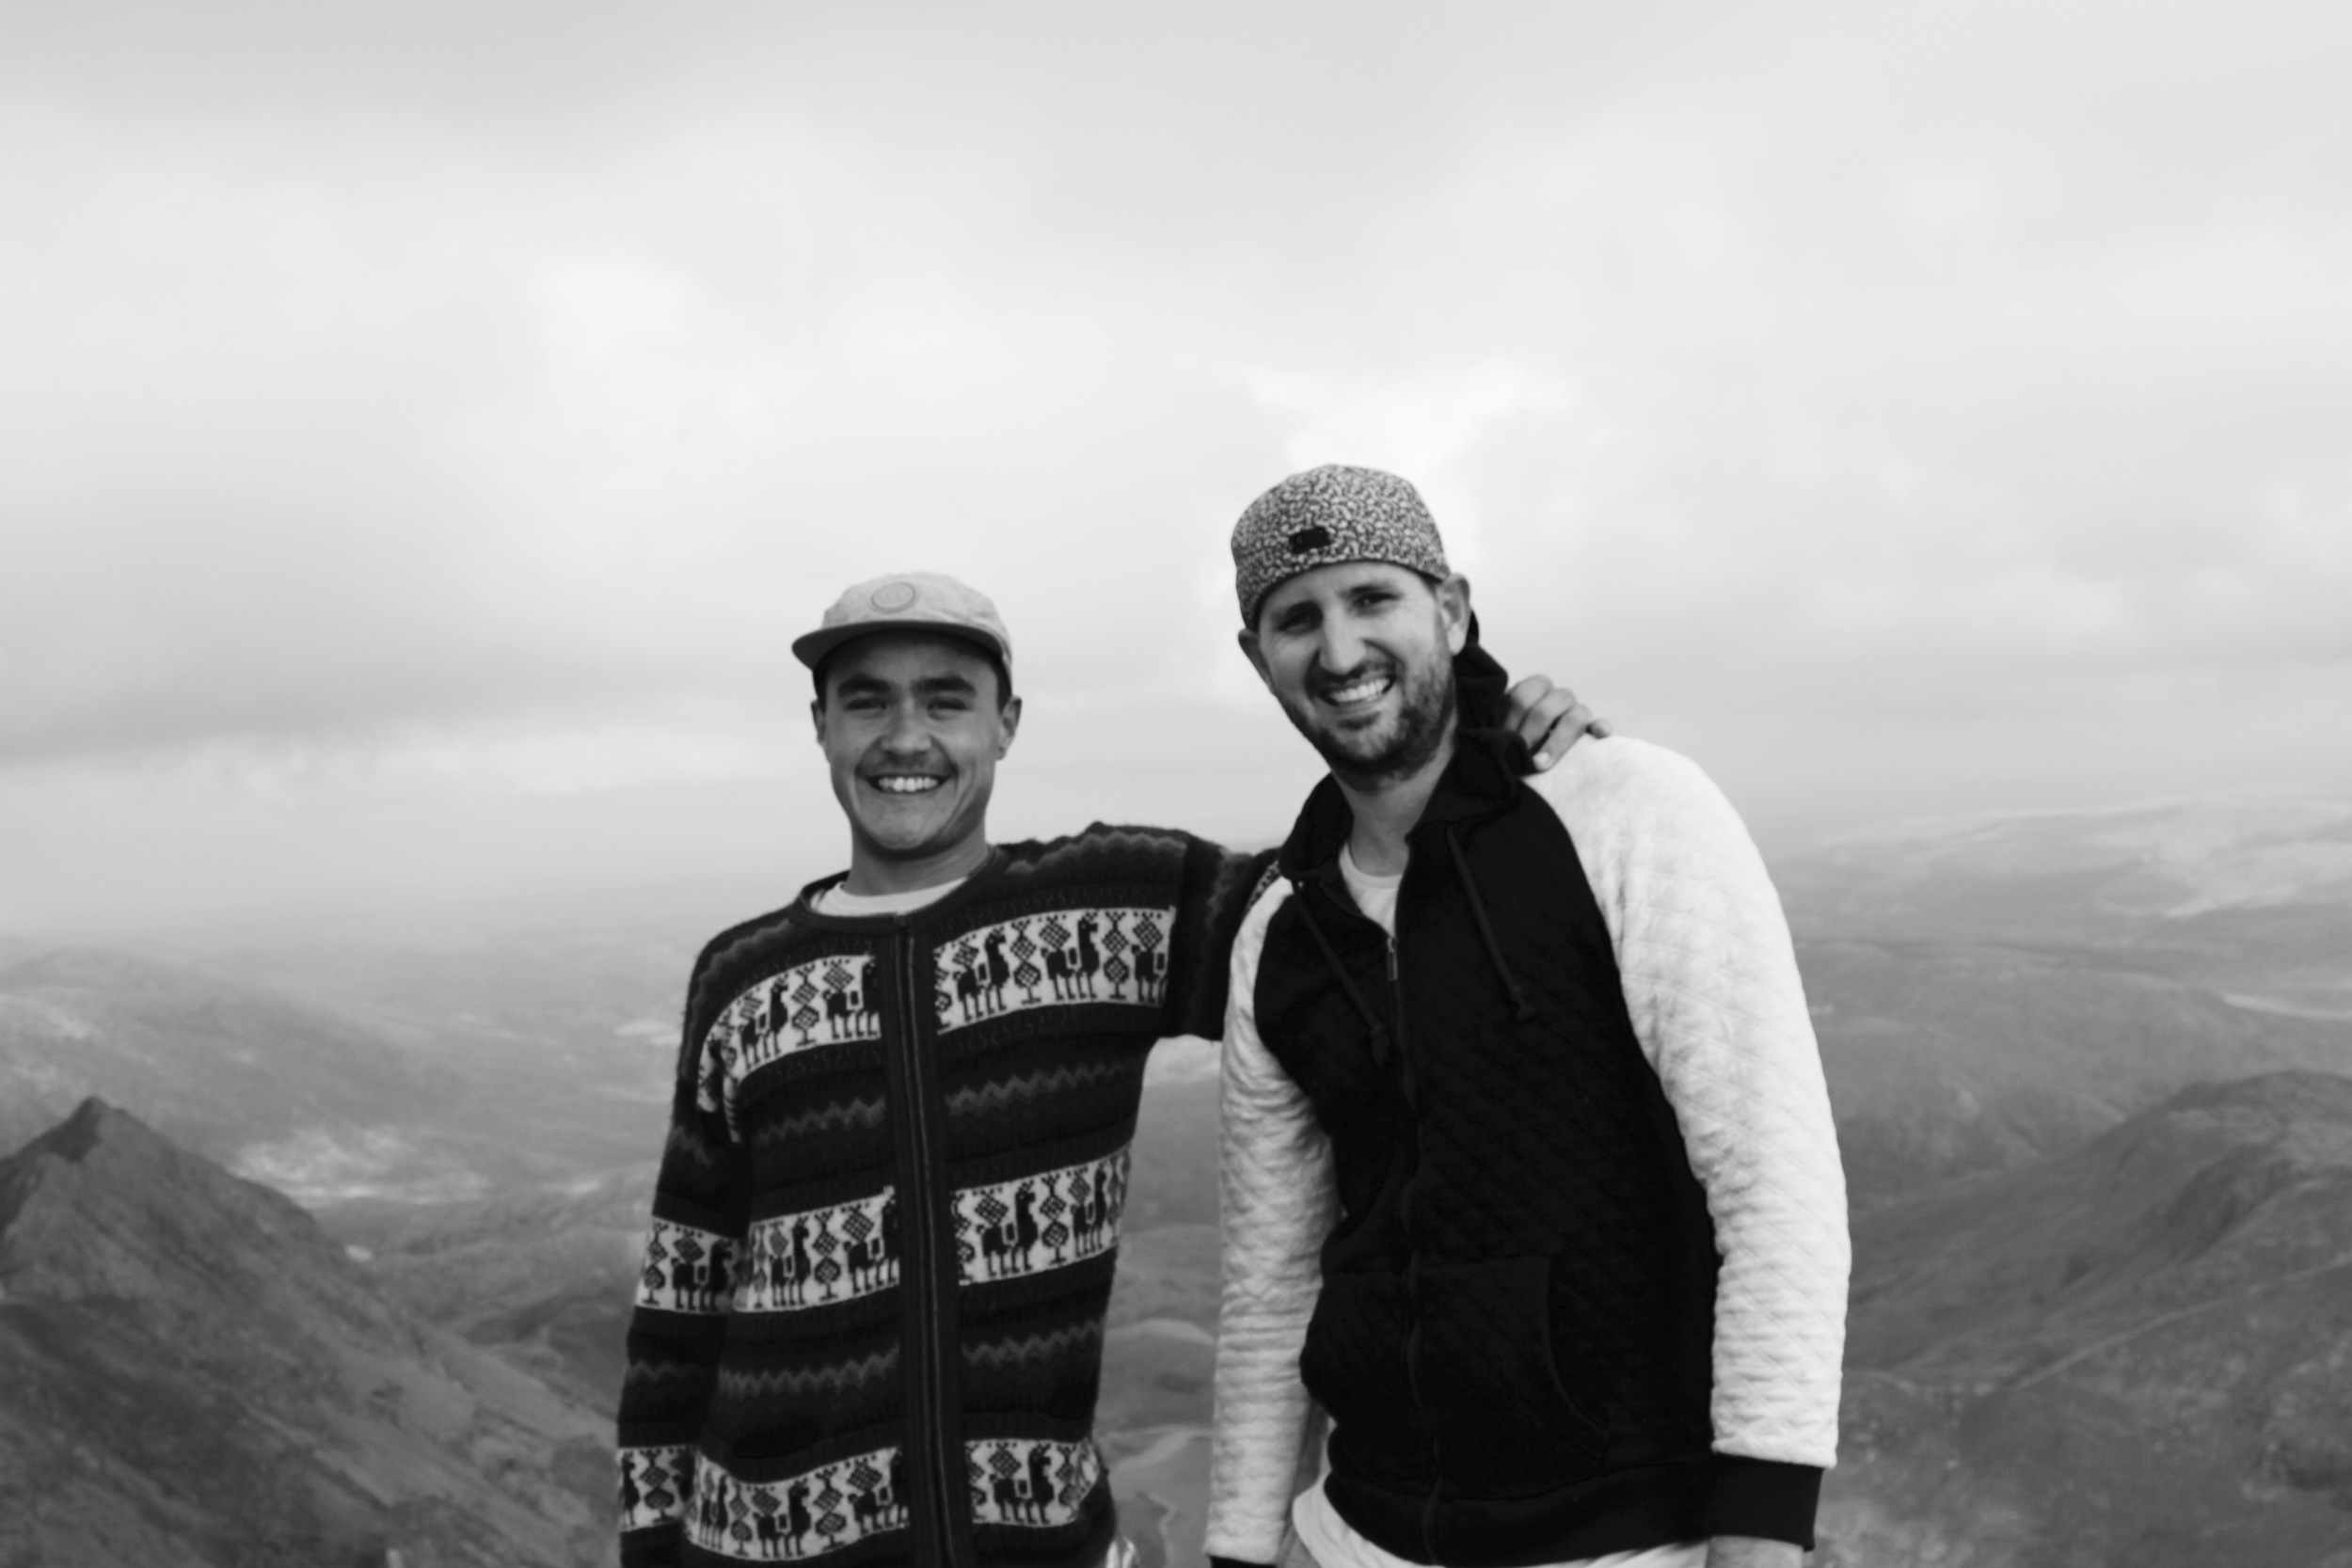 Brothers at the peak.